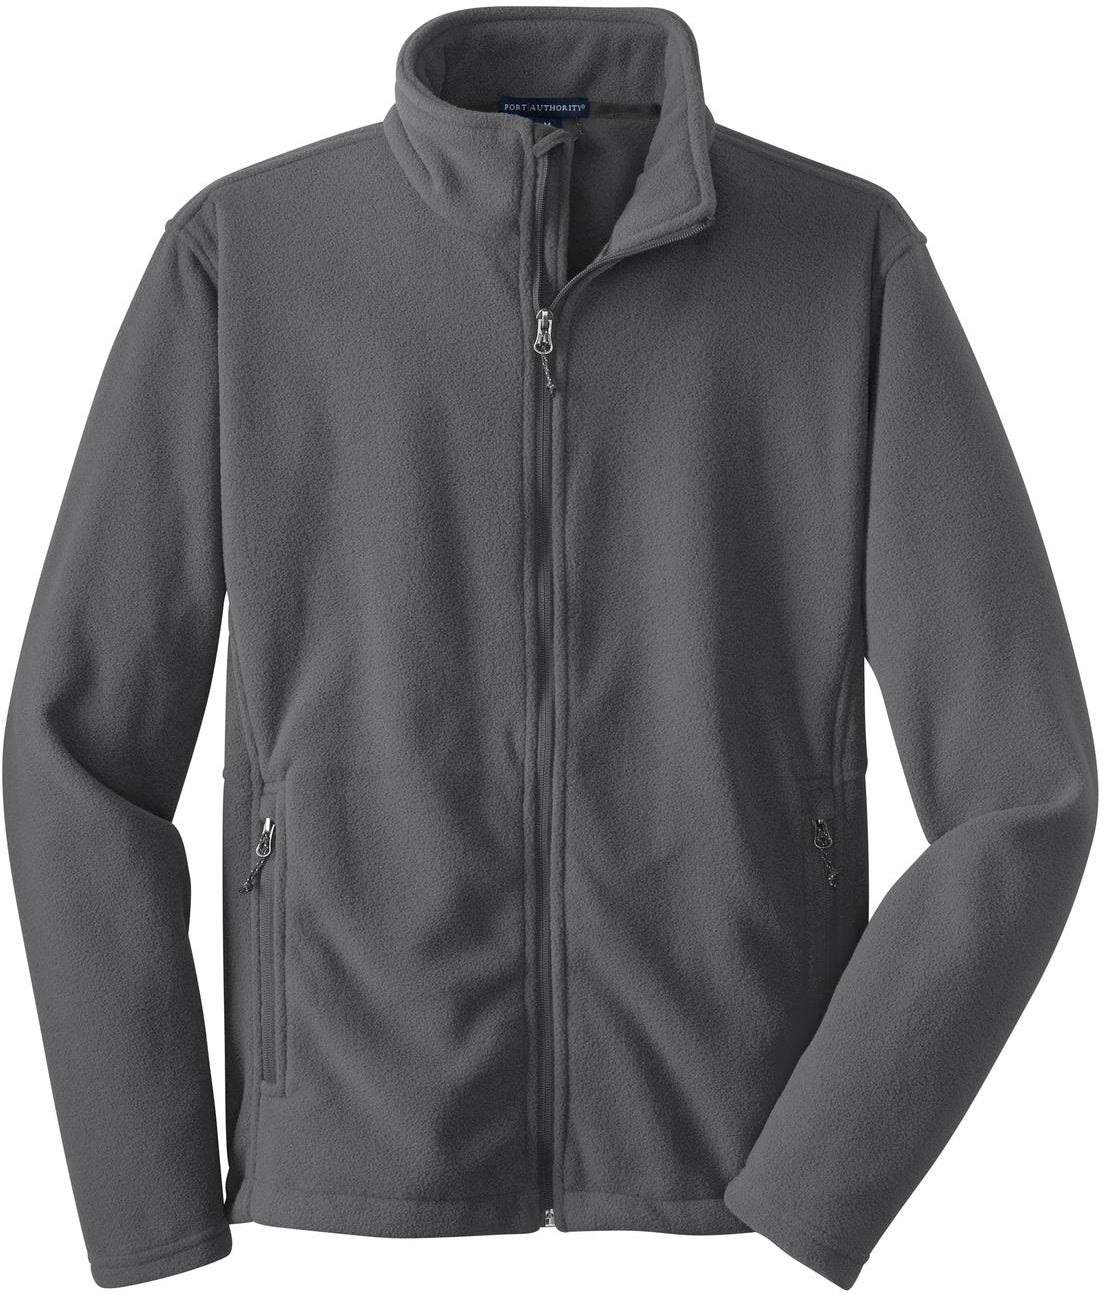 Port Authority-Value Fleece Jacket-S-Iron-Thread Logic